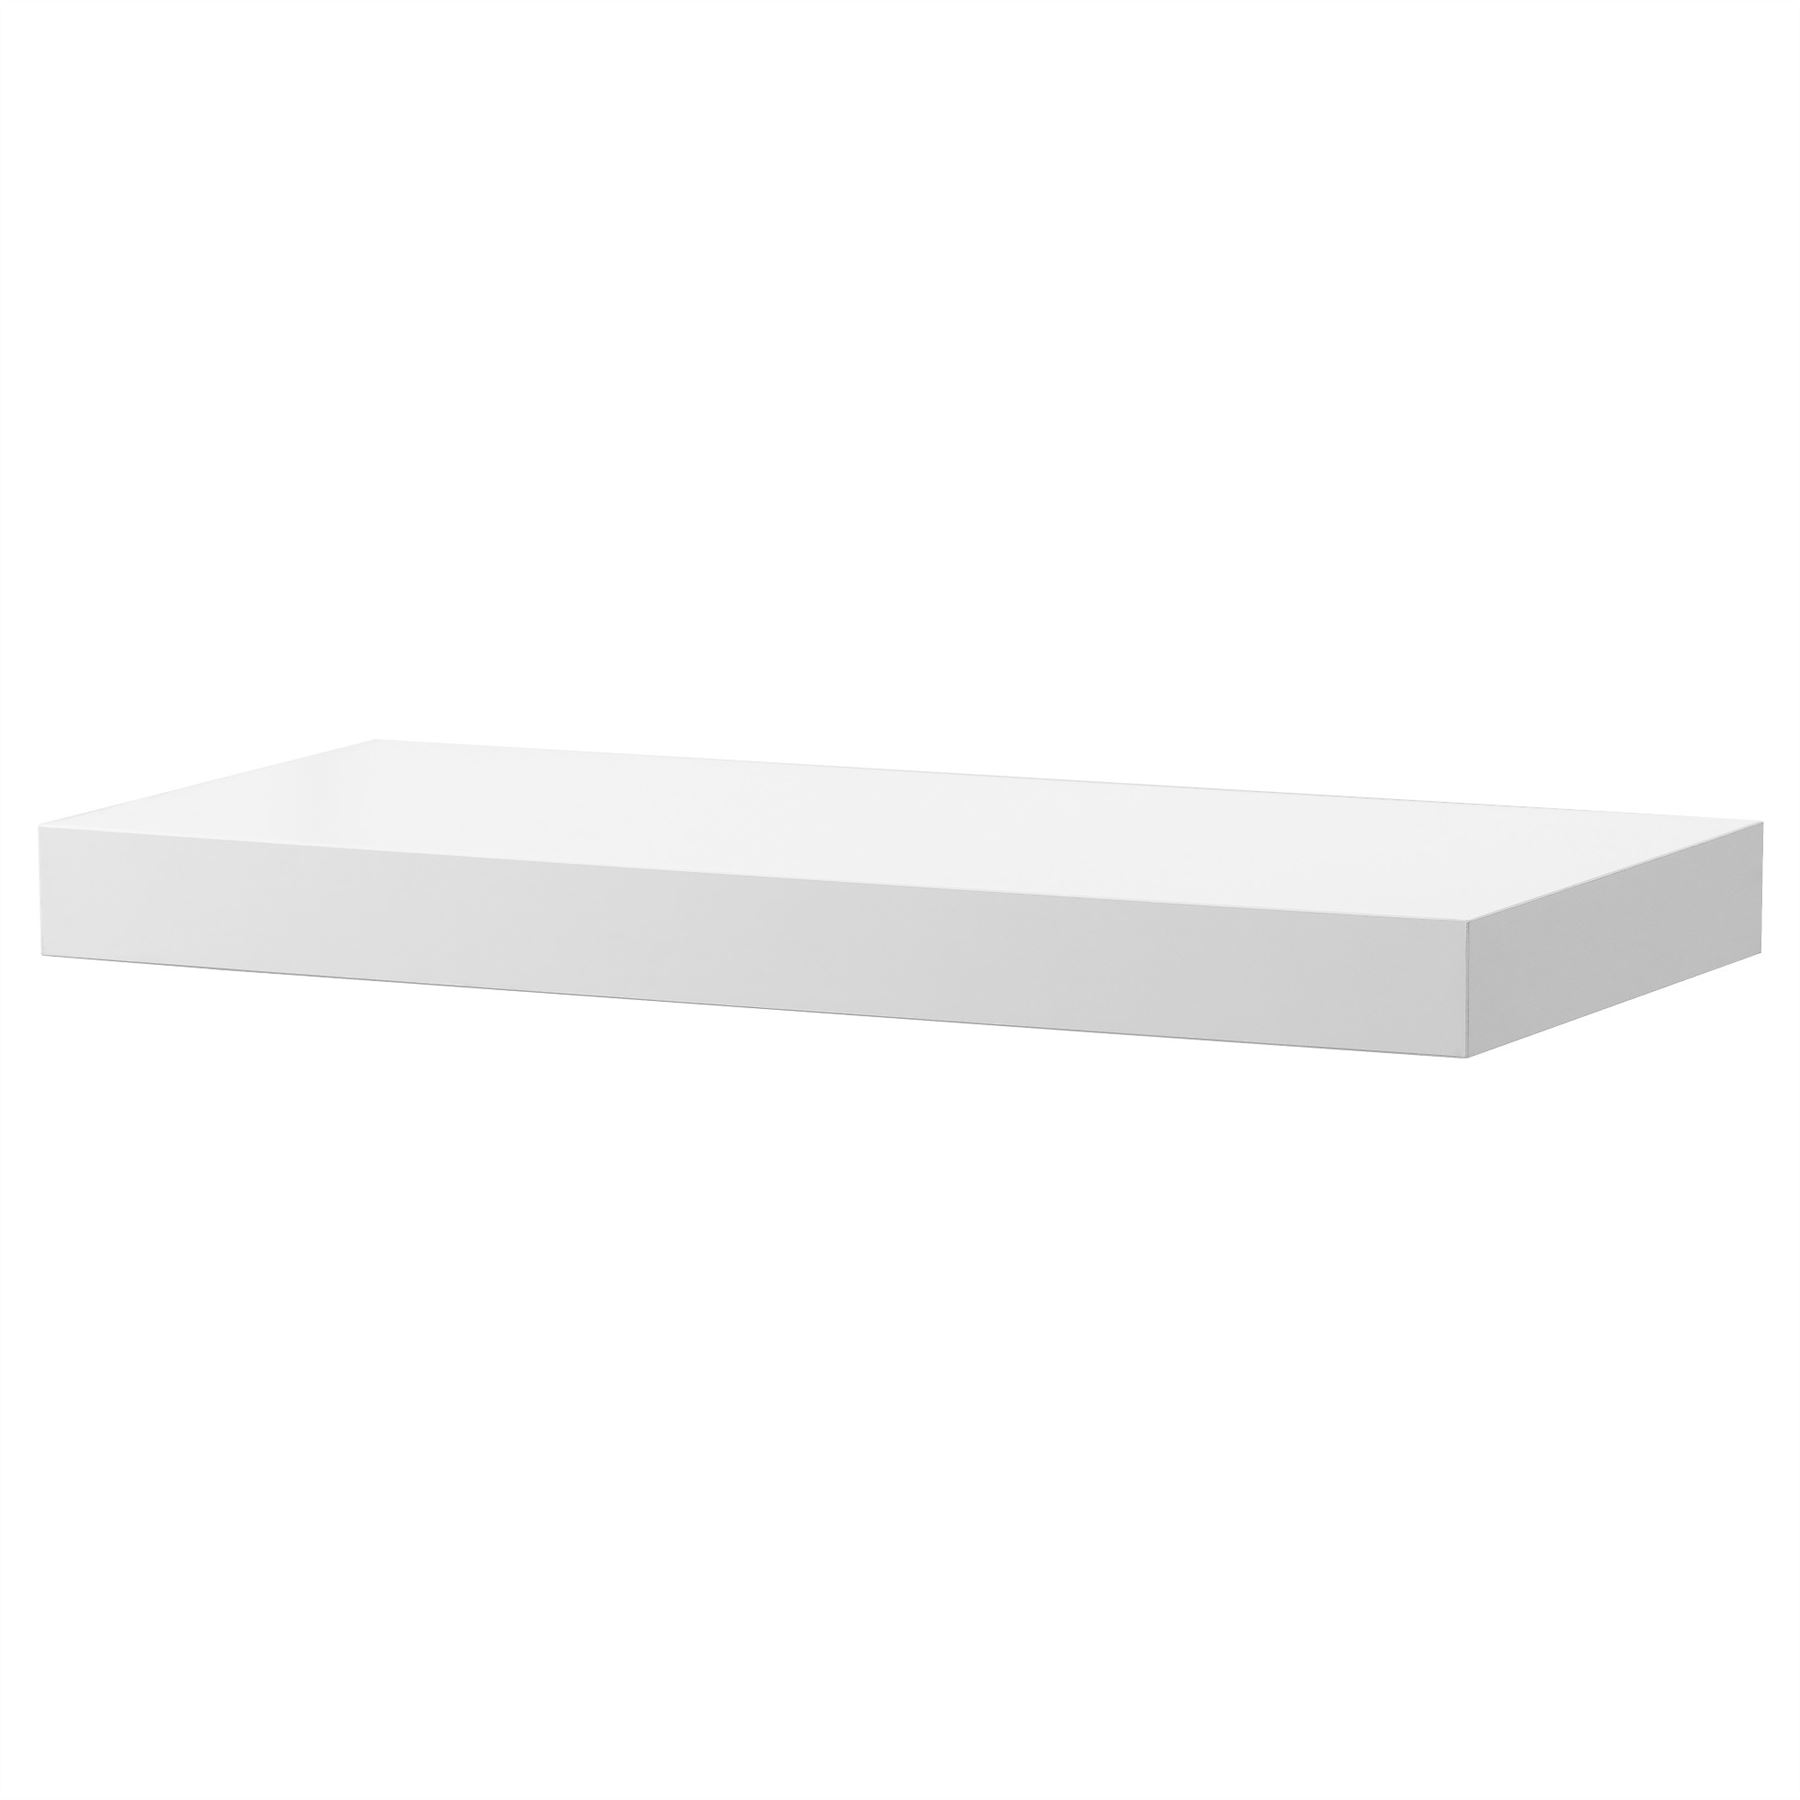 Ikea Lack Floating Wall Shelf Display Concealed Mounting ...